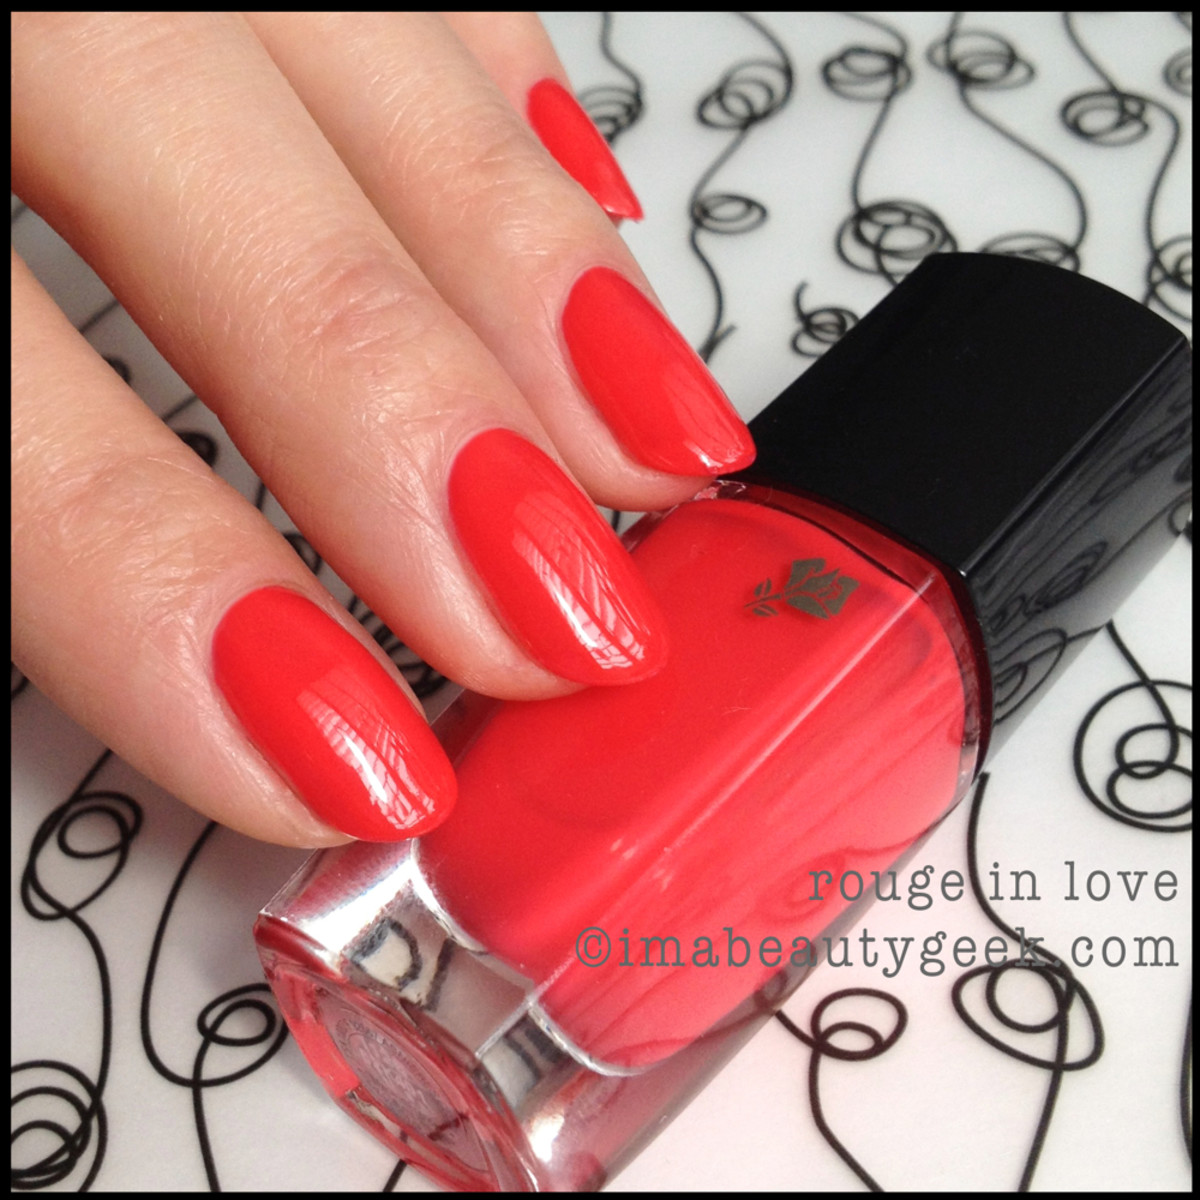 Lancome polish Rouge in Love